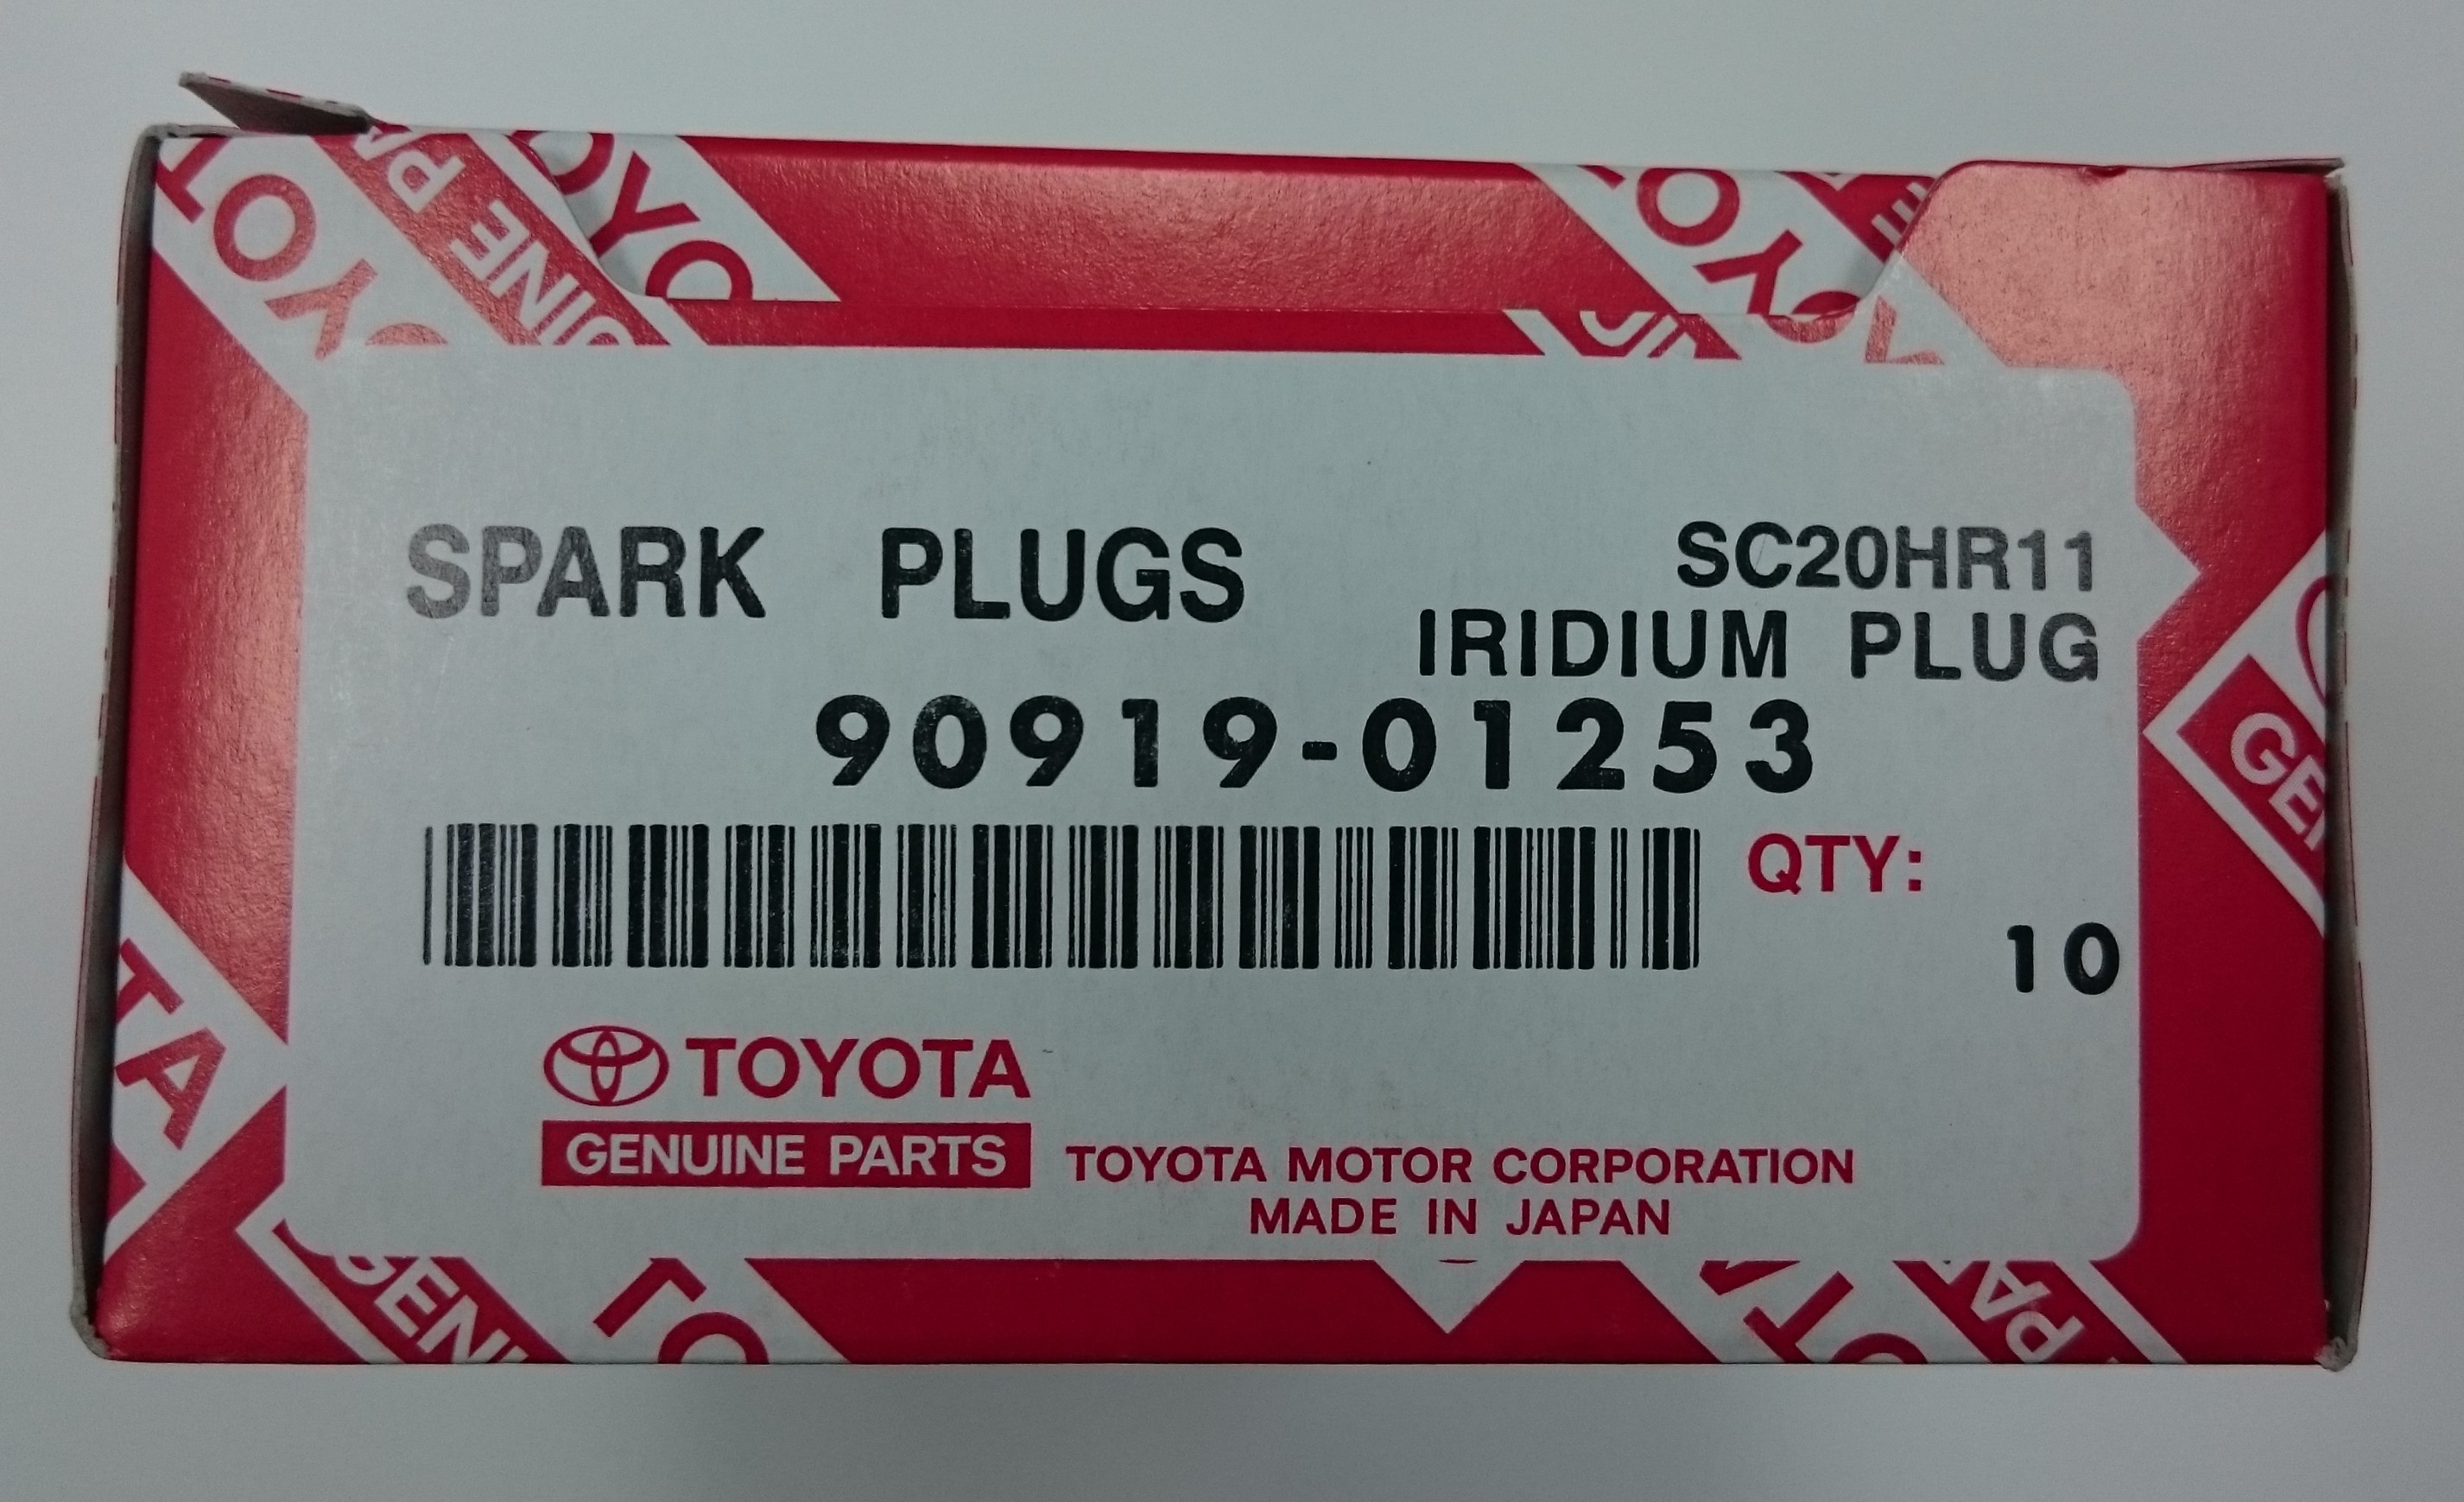 value zarghoon and are toyota not only detail new pride meet making motors genuine a parts great in dept takes also remanufactured img they products quality